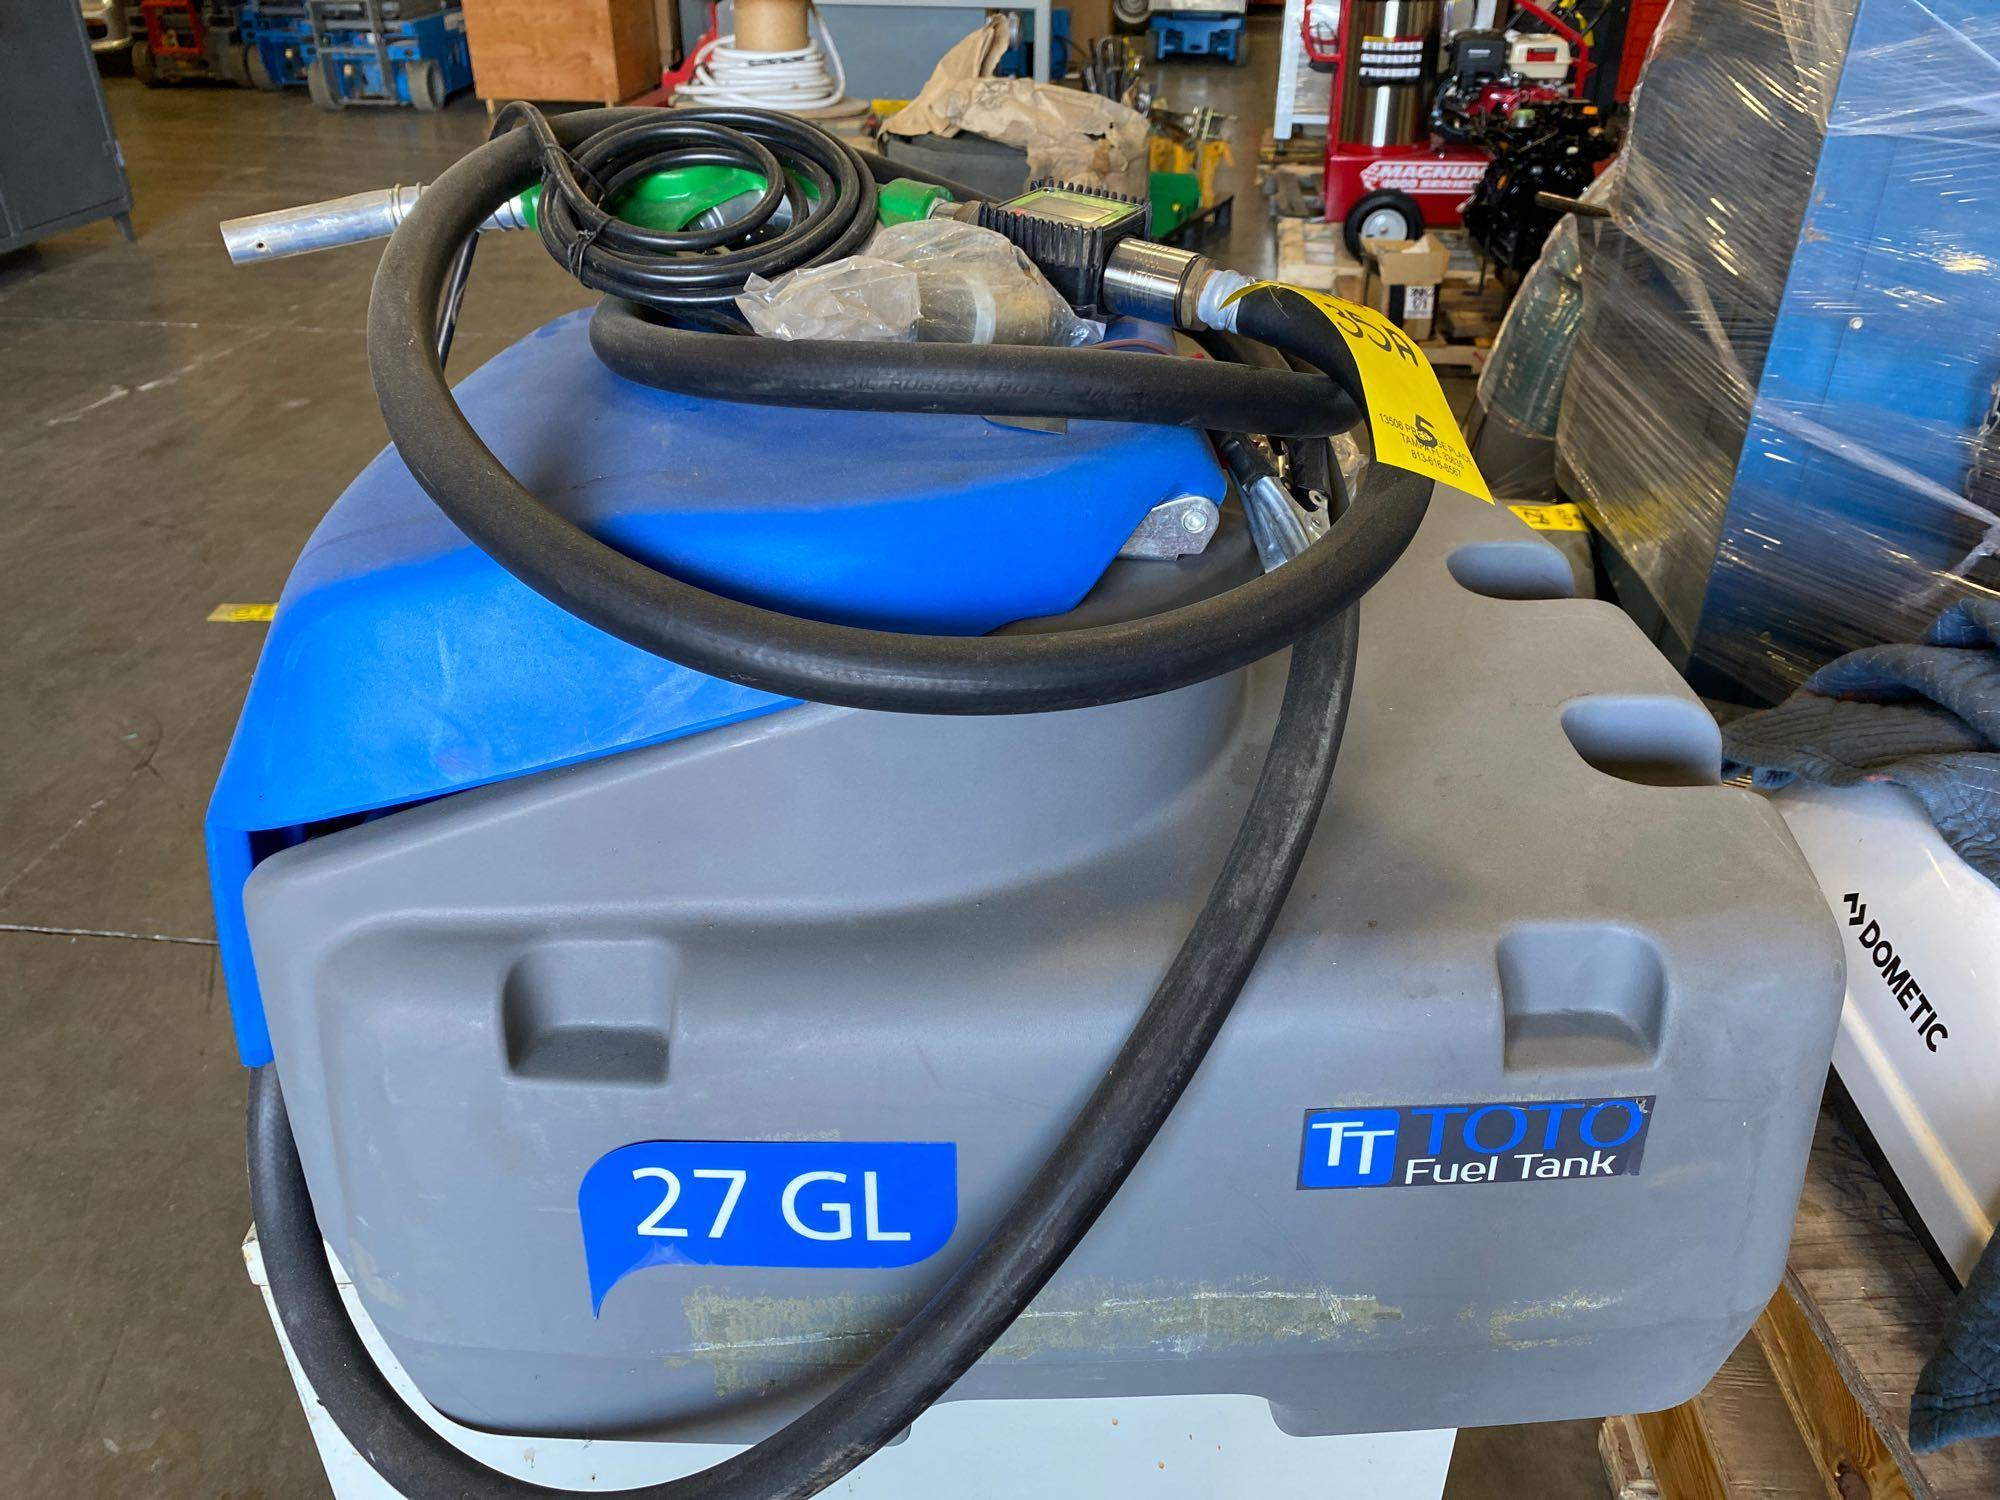 UNUSED TOTO 27 GALLON FUEL TANK WITH 12V PUMP - Image 4 of 6